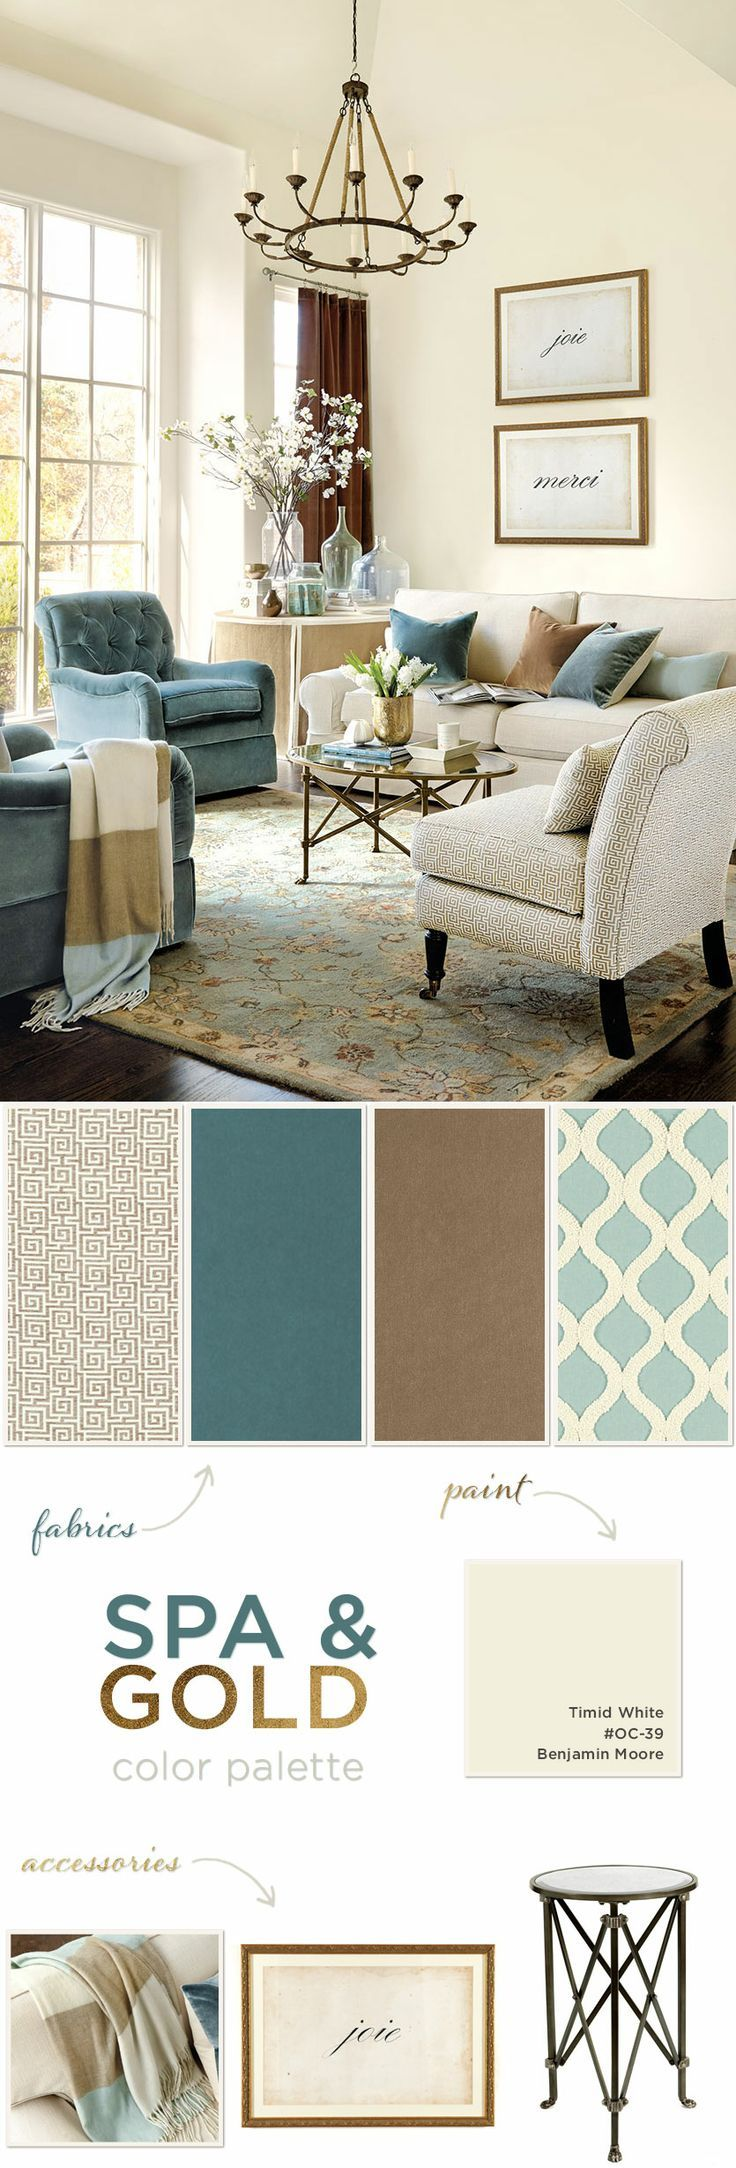 Pin By Cari Mccaig On Living Room Colores Colores Para Sala